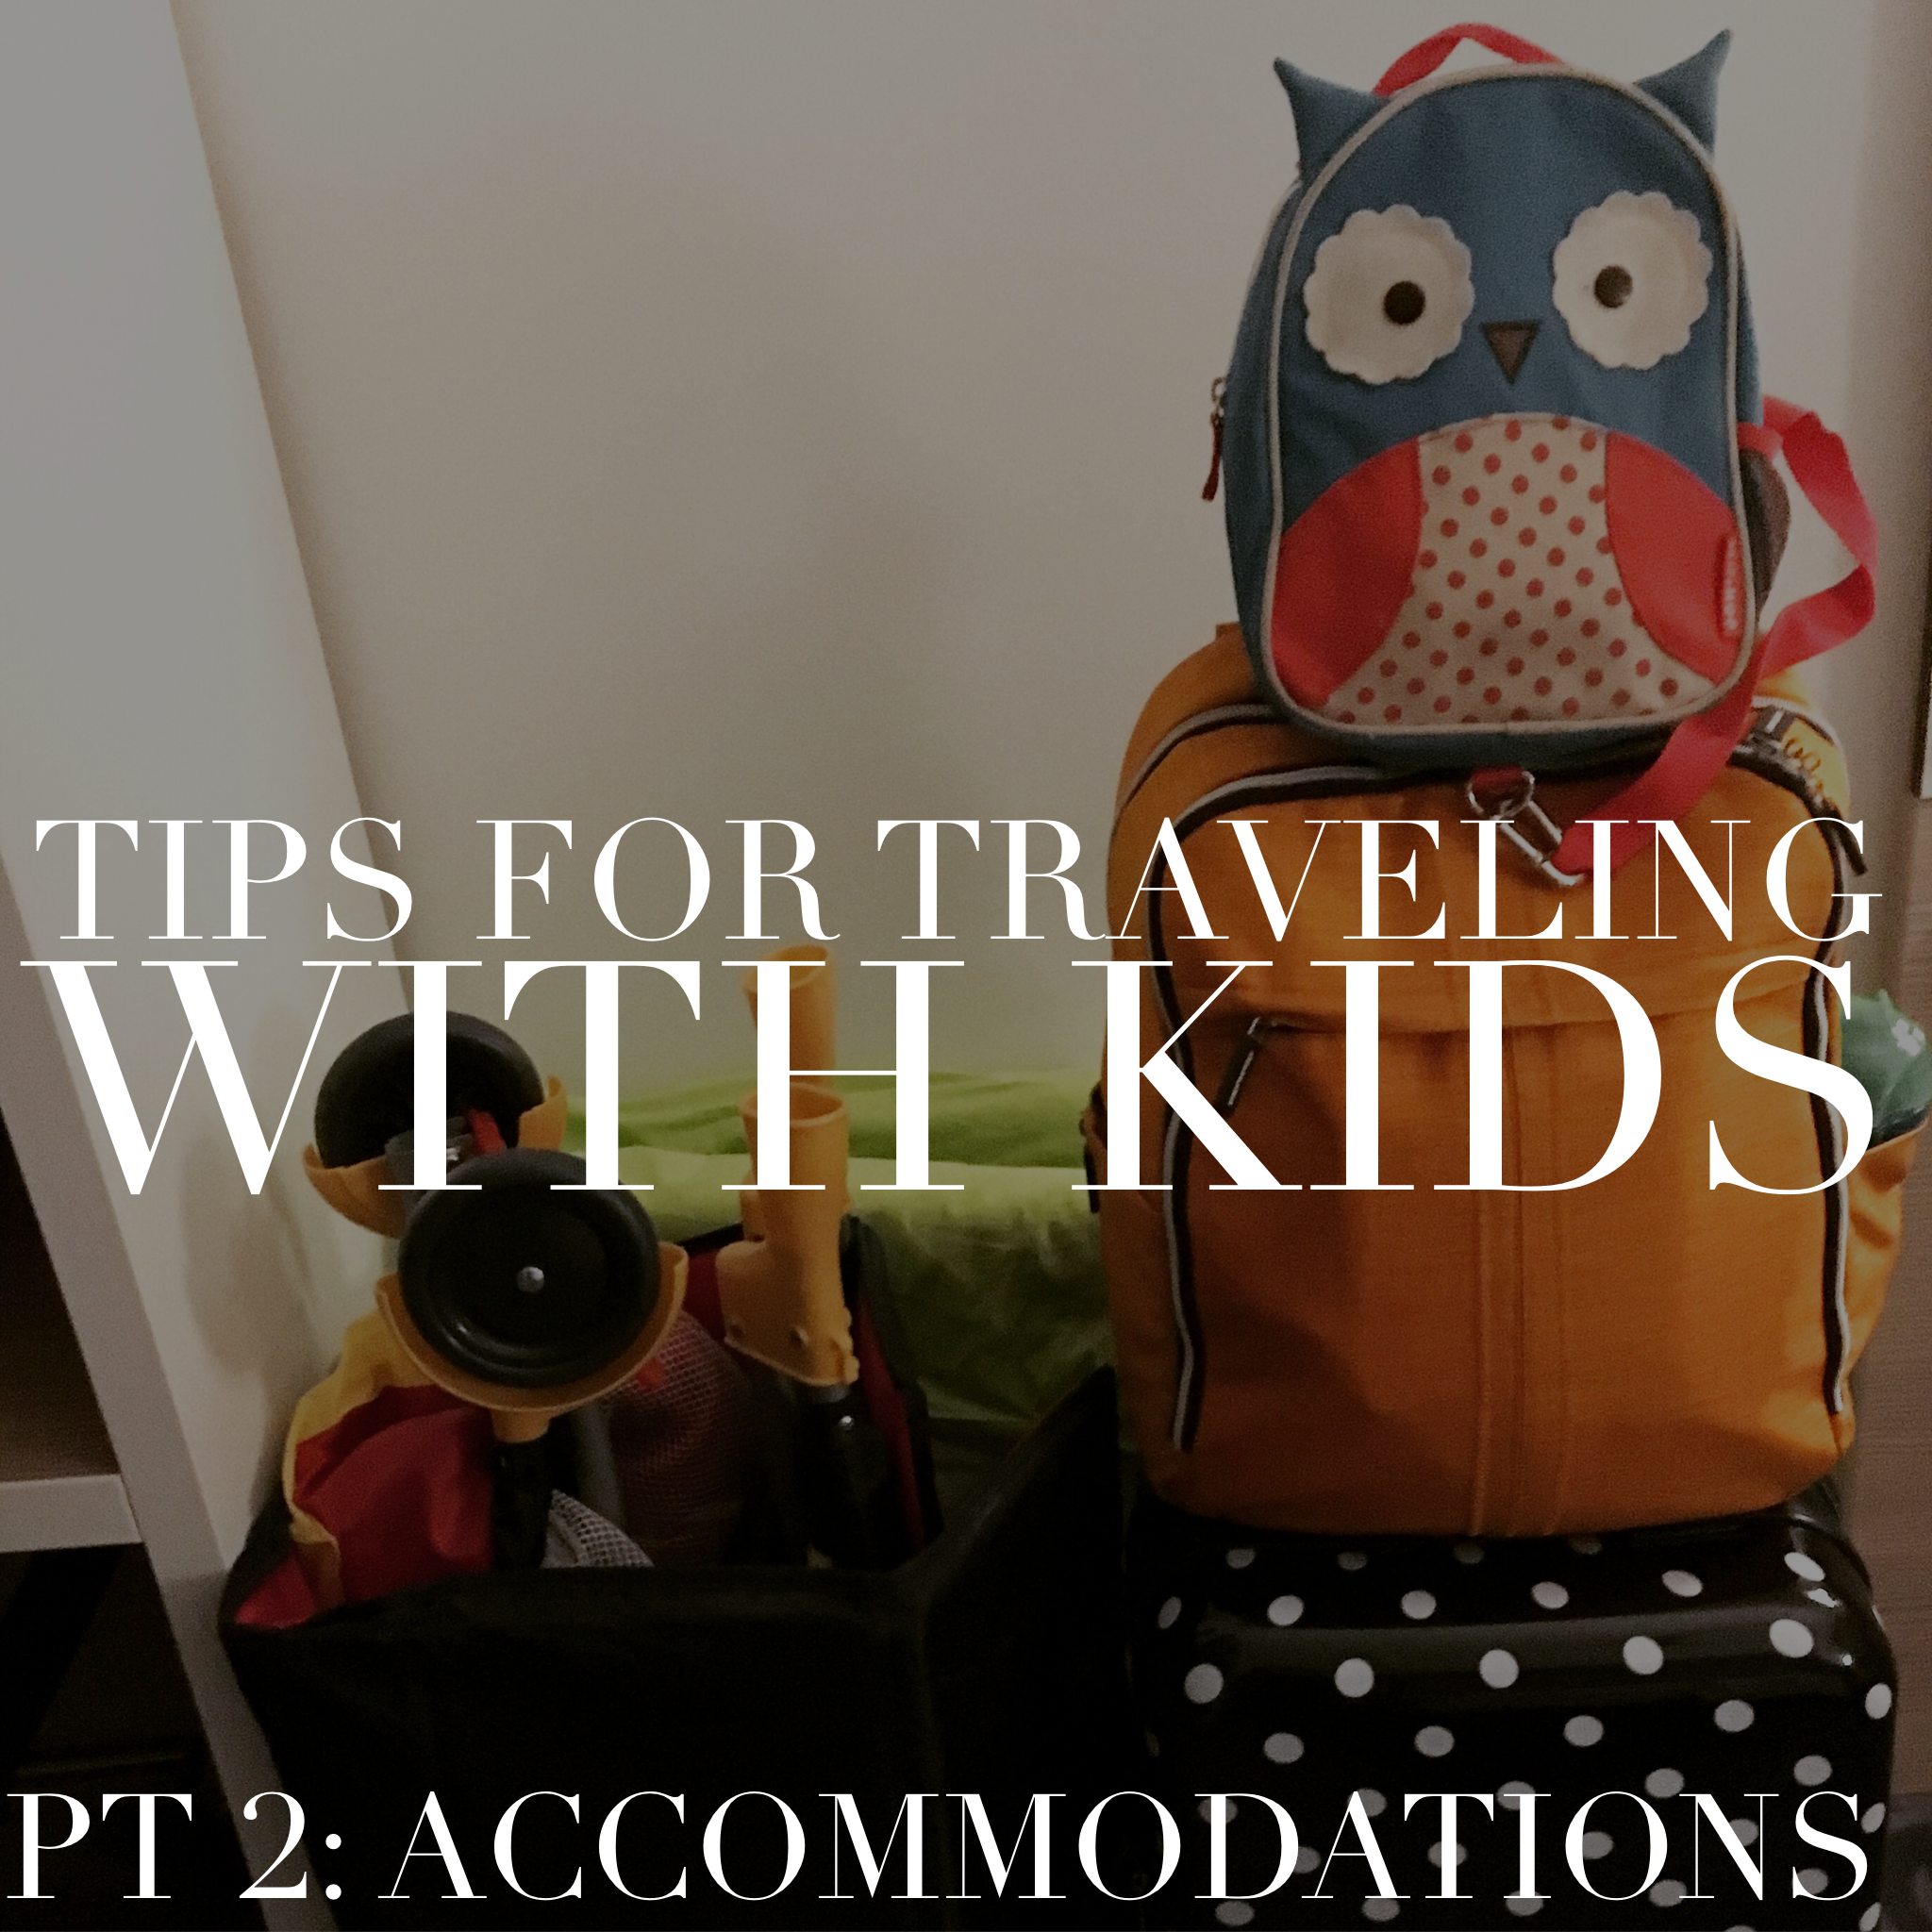 Tips for Traveling with Kids: Accommodations for Family Travel (Part 2)